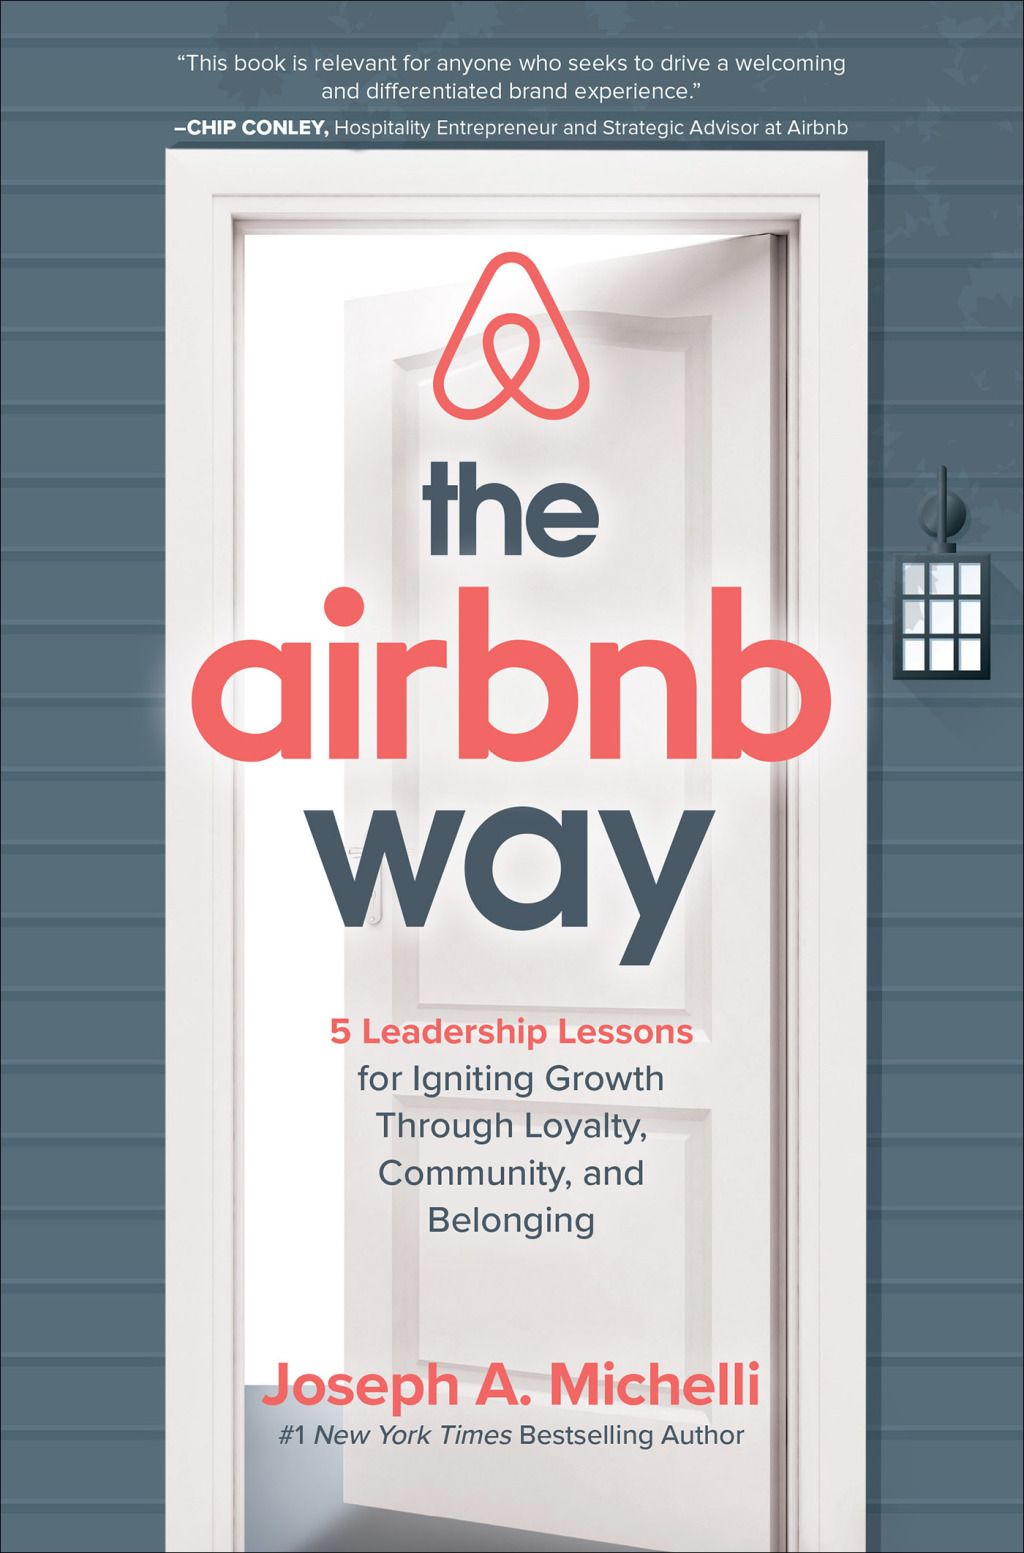 The Airbnb Way by Joseph A. Michelli